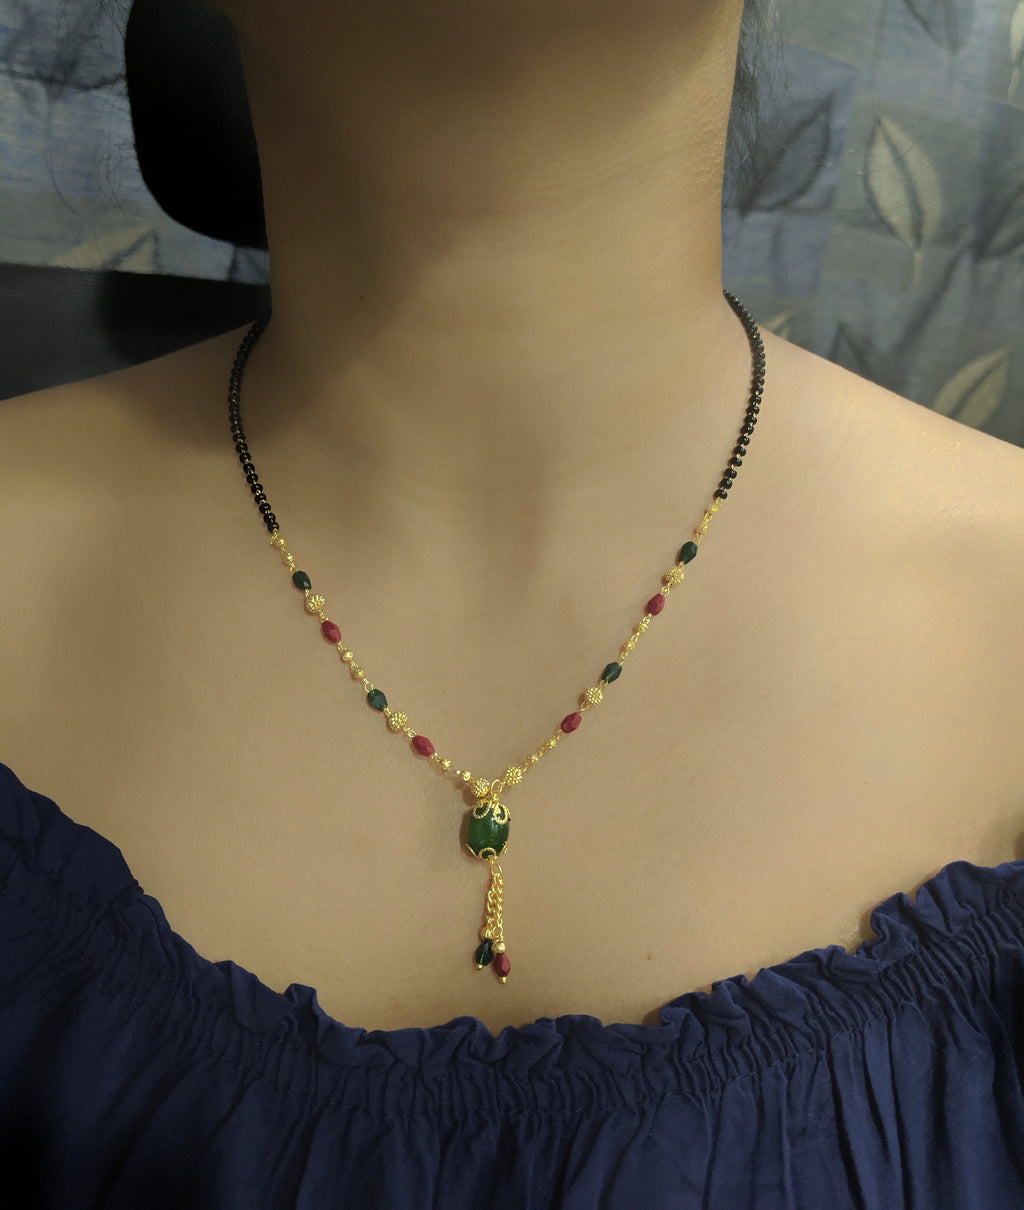 Short Mangalsutra Designs Gold Plated Latest Green Stone Pendant Multi-Color Latkan Mangalsutra - DigitalDressRoom